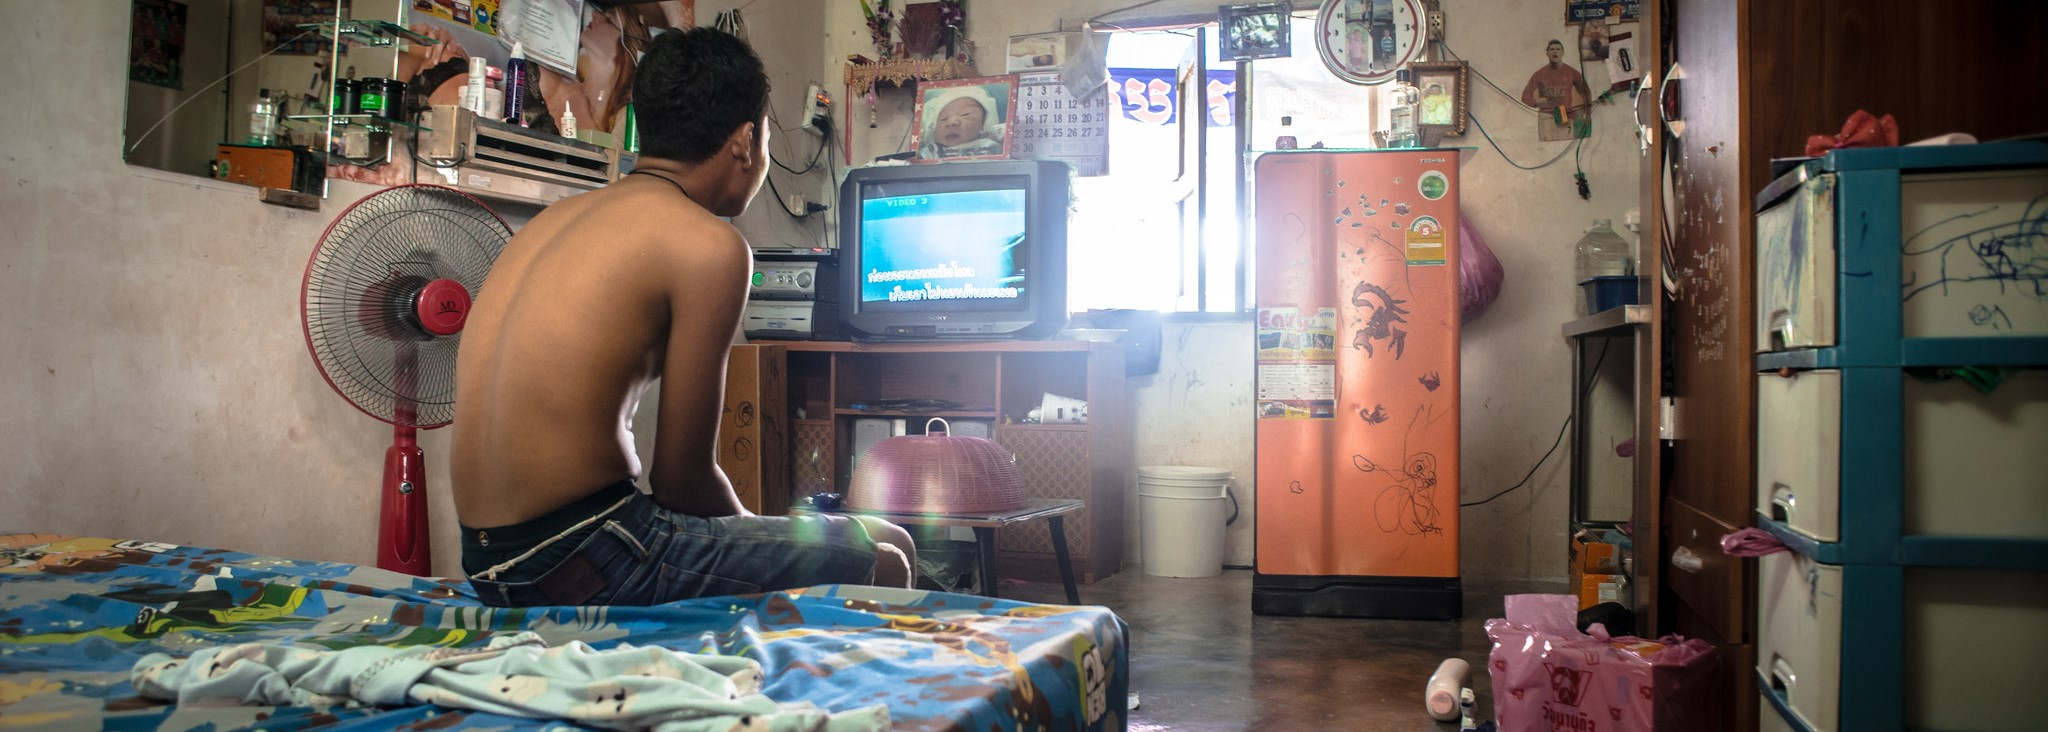 Cambodian migrant worker in his dorm, Thailand (Photo: Flickr/  ILO in Asia and the Pacific)